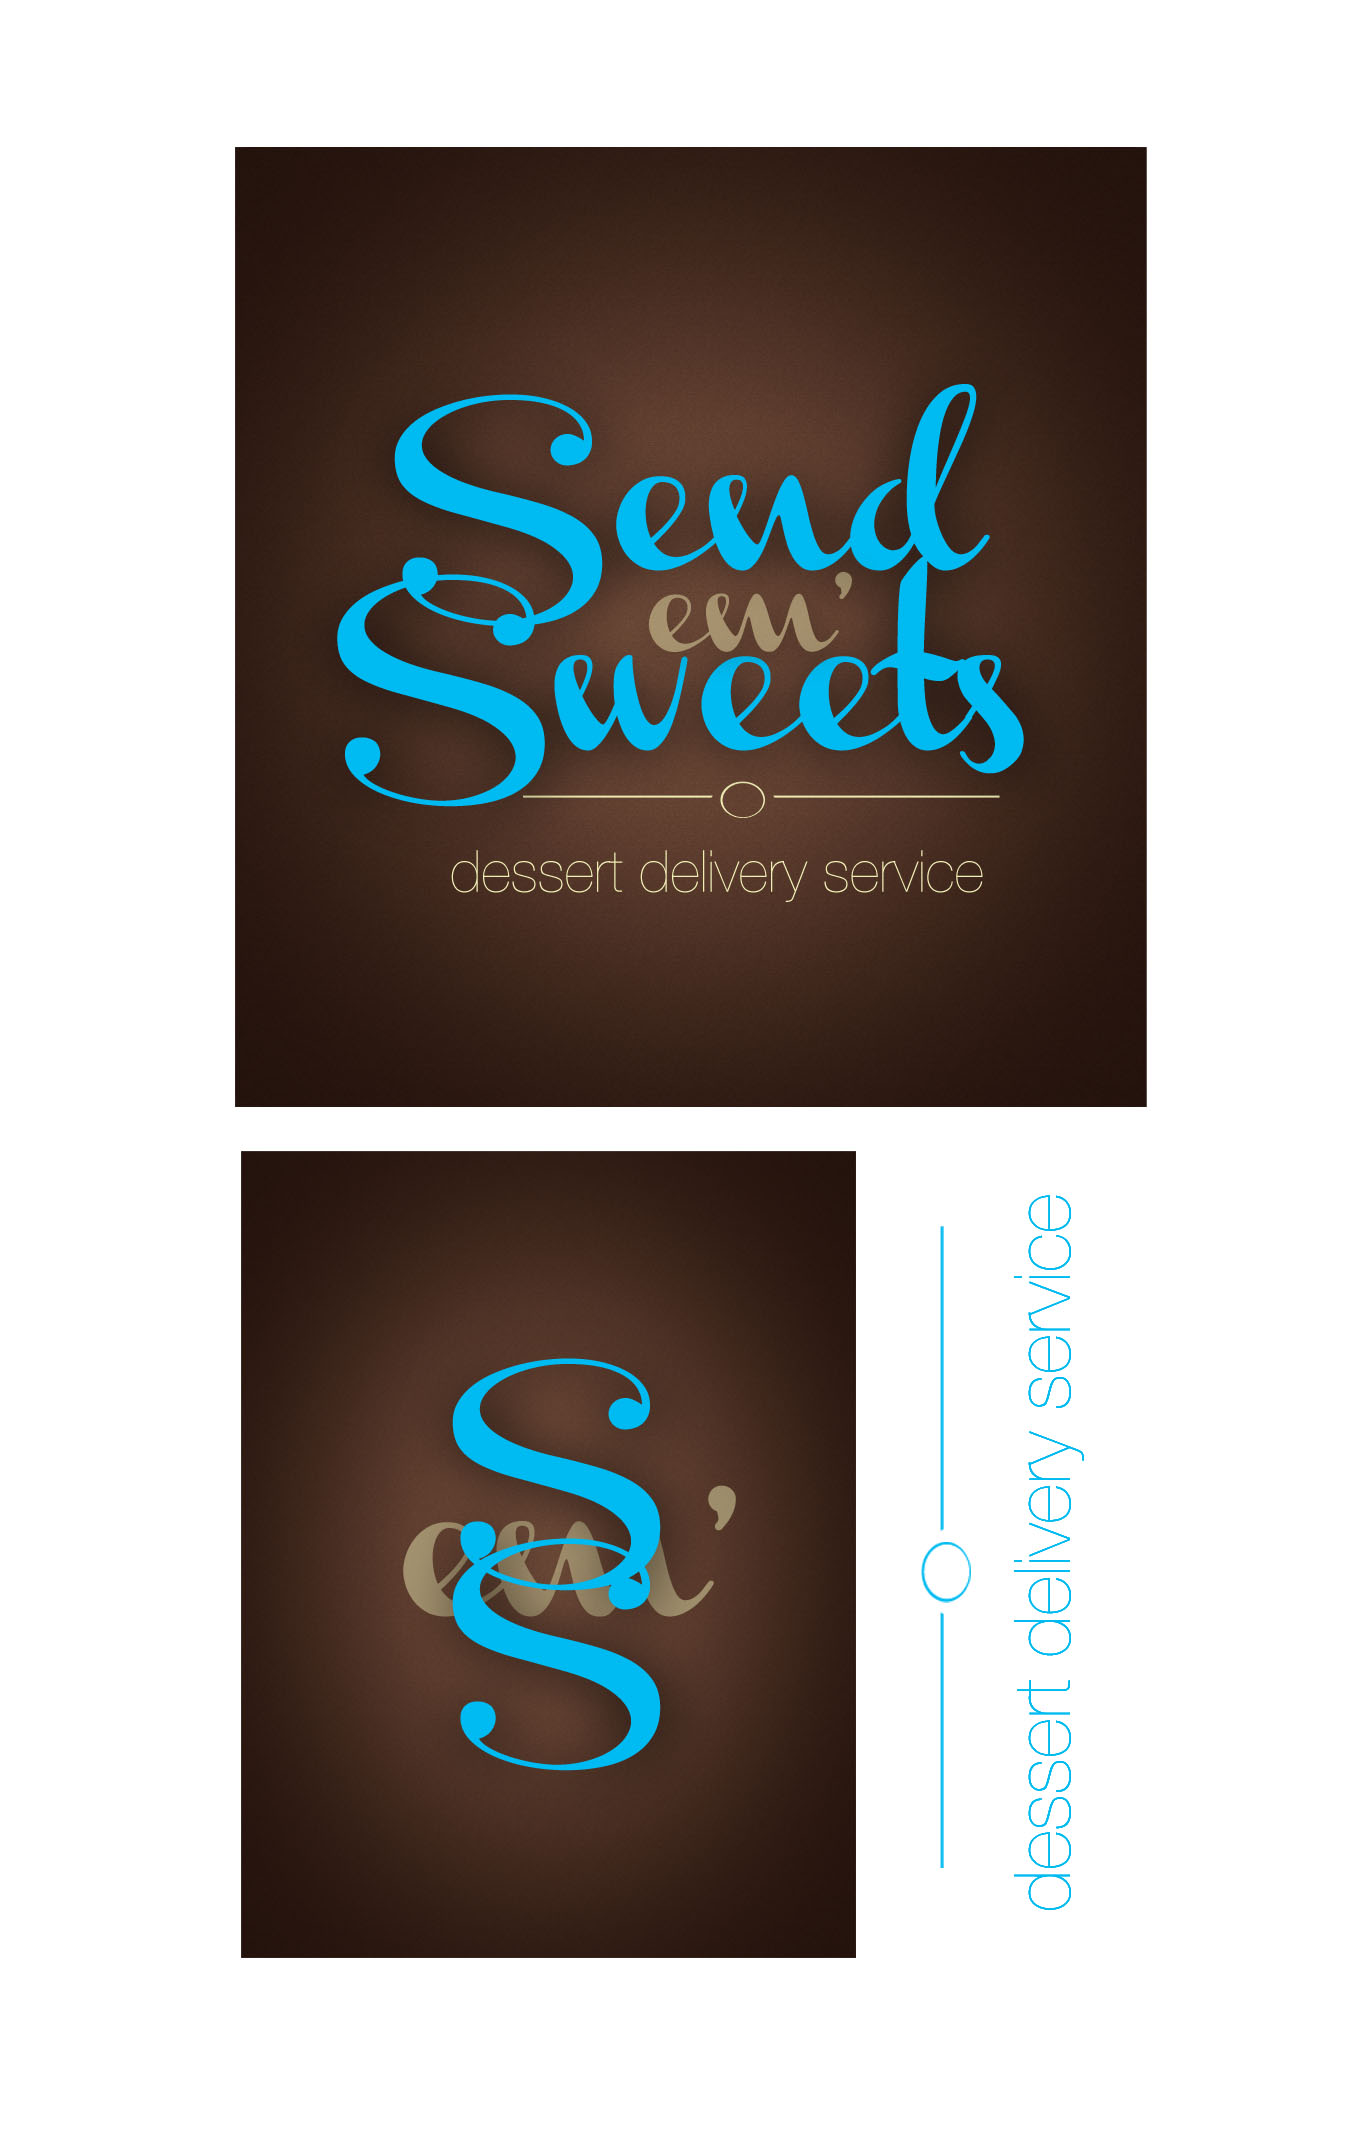 Logo Design by Lama Creative - Entry No. 27 in the Logo Design Contest Creative Logo Design for Send 'em Sweets.